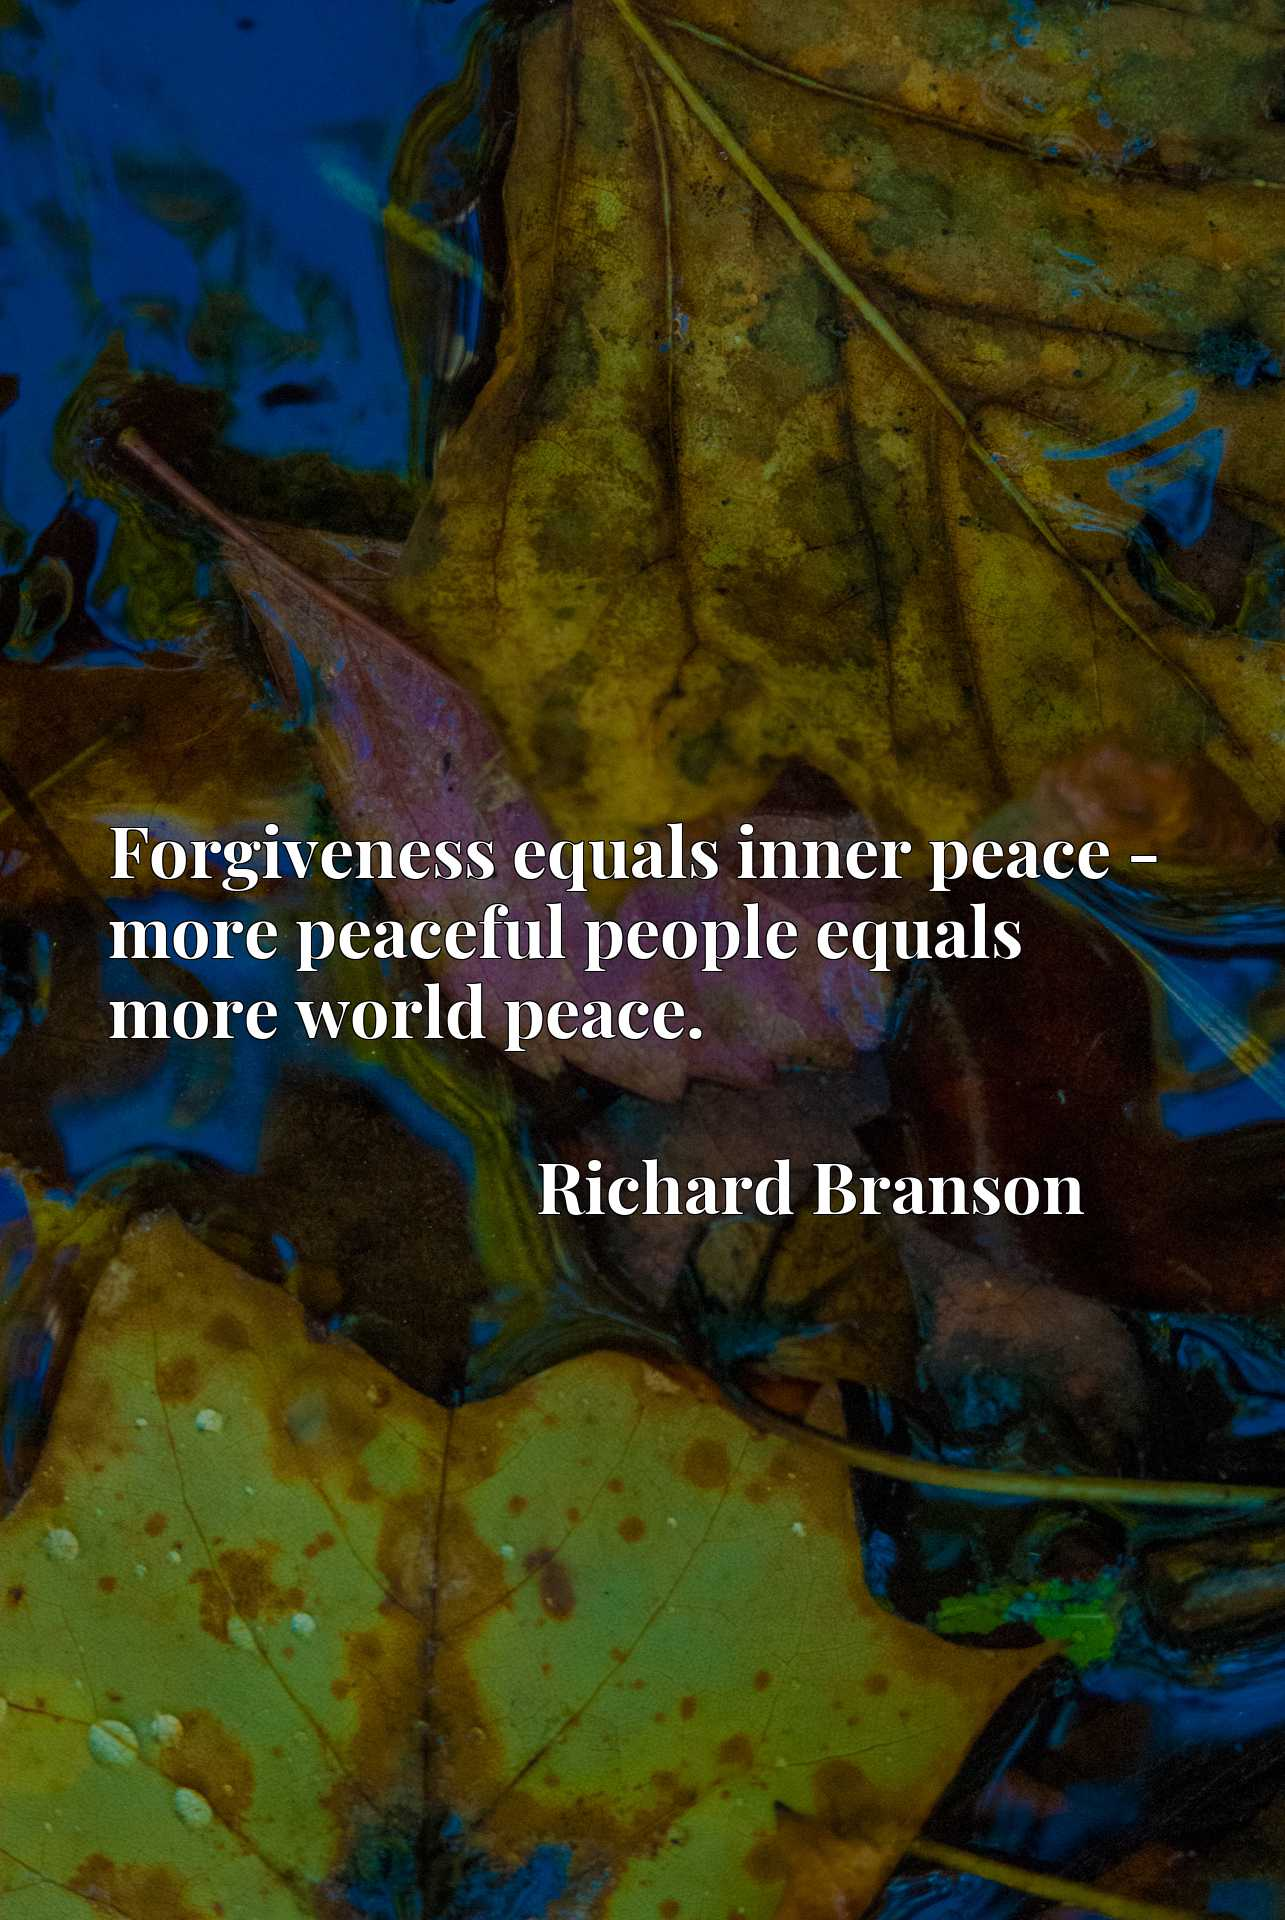 Quote Picture :Forgiveness equals inner peace - more peaceful people equals more world peace.